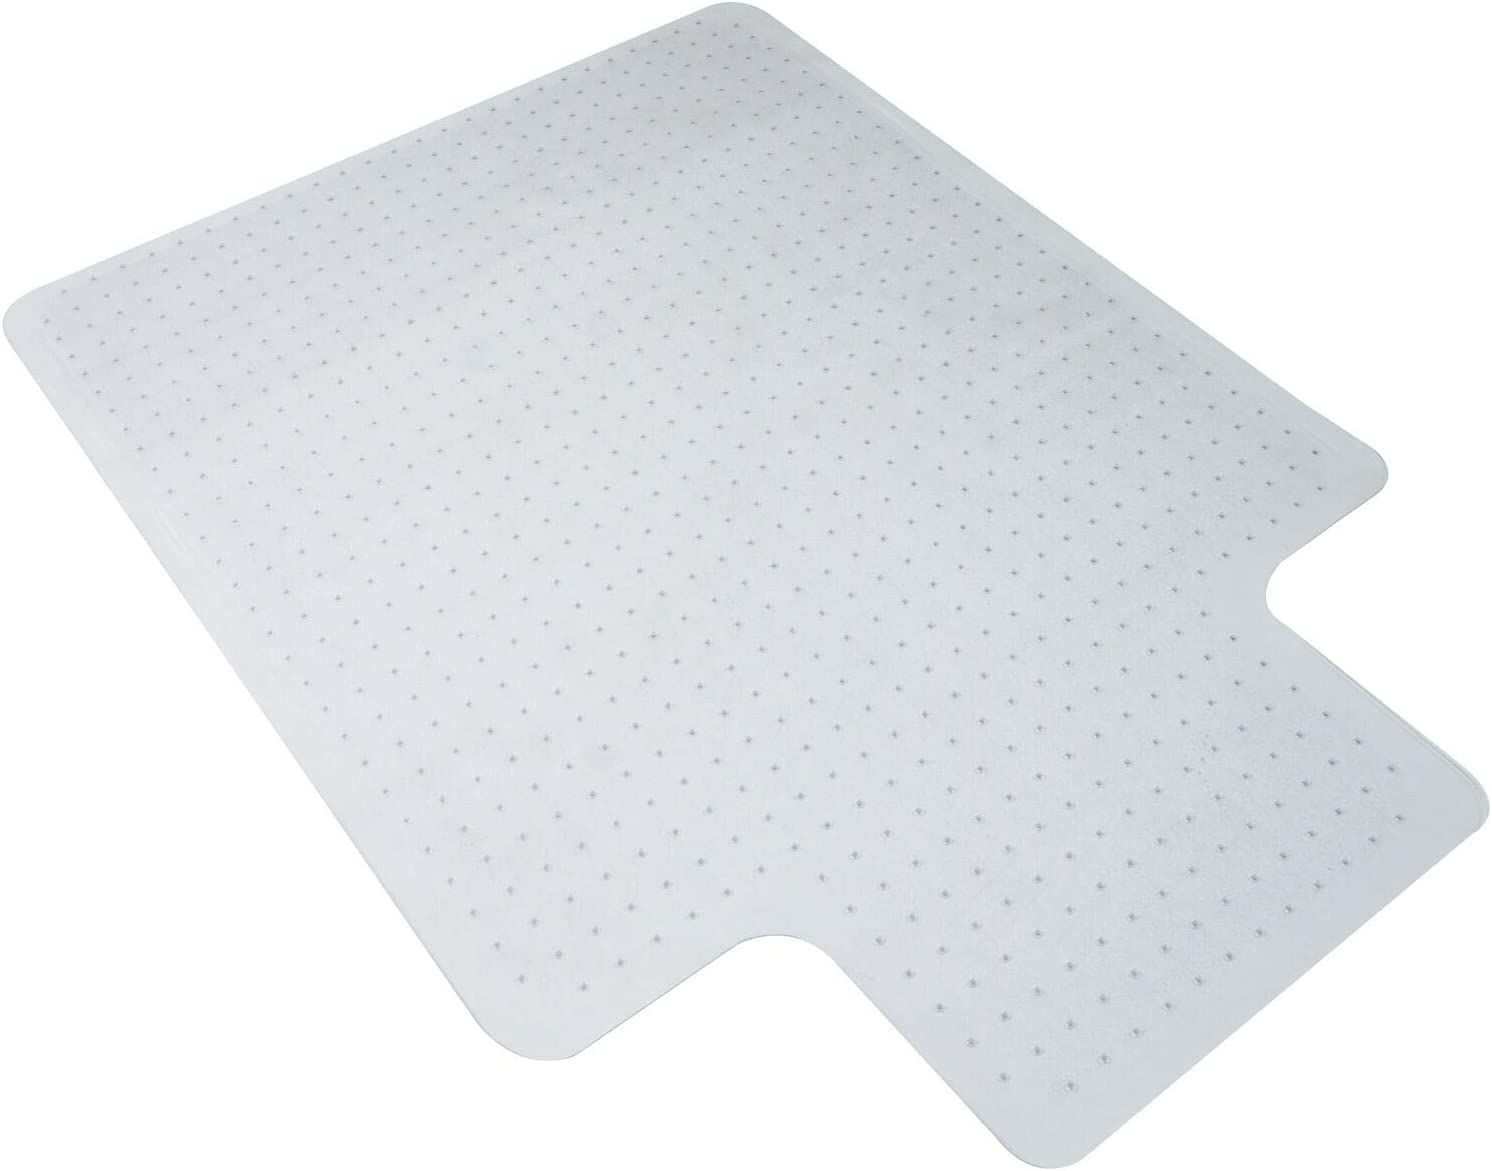 35.4 X 47.2 Clear PVC Carpet Mats Rug Protector Chair Mat US Stock Office Chair Mat for Carpeted Floors